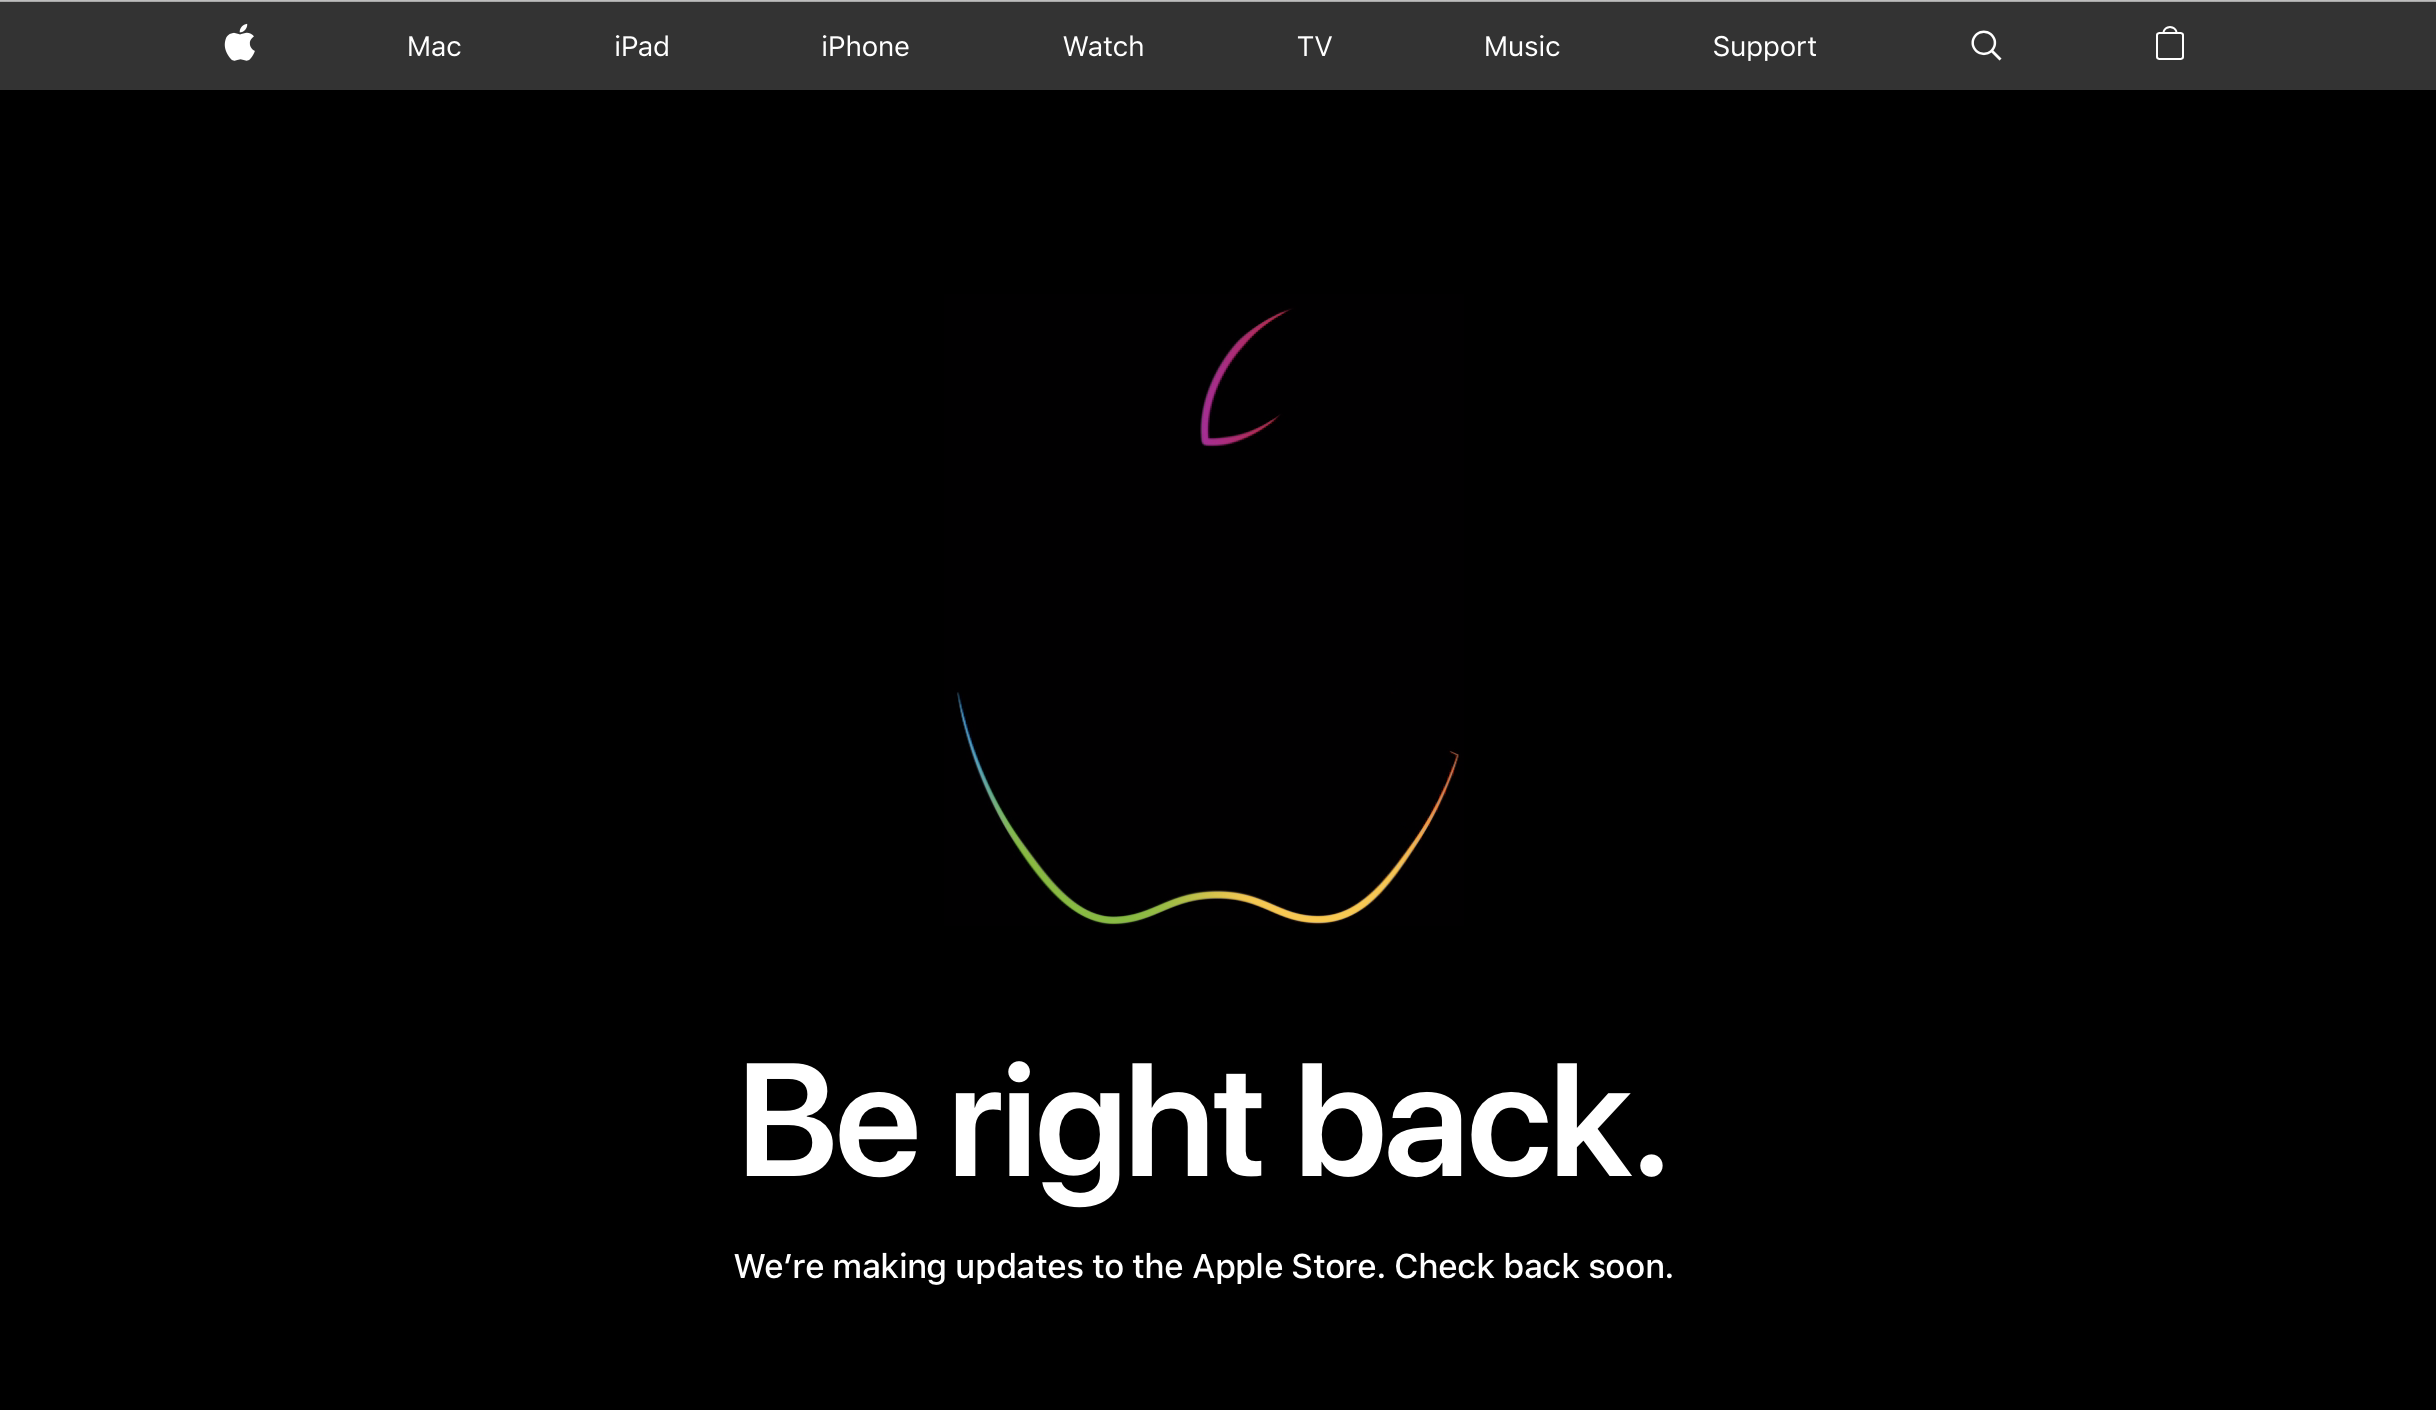 Update: New iPads!] Apple Store is down as iPad and iMac